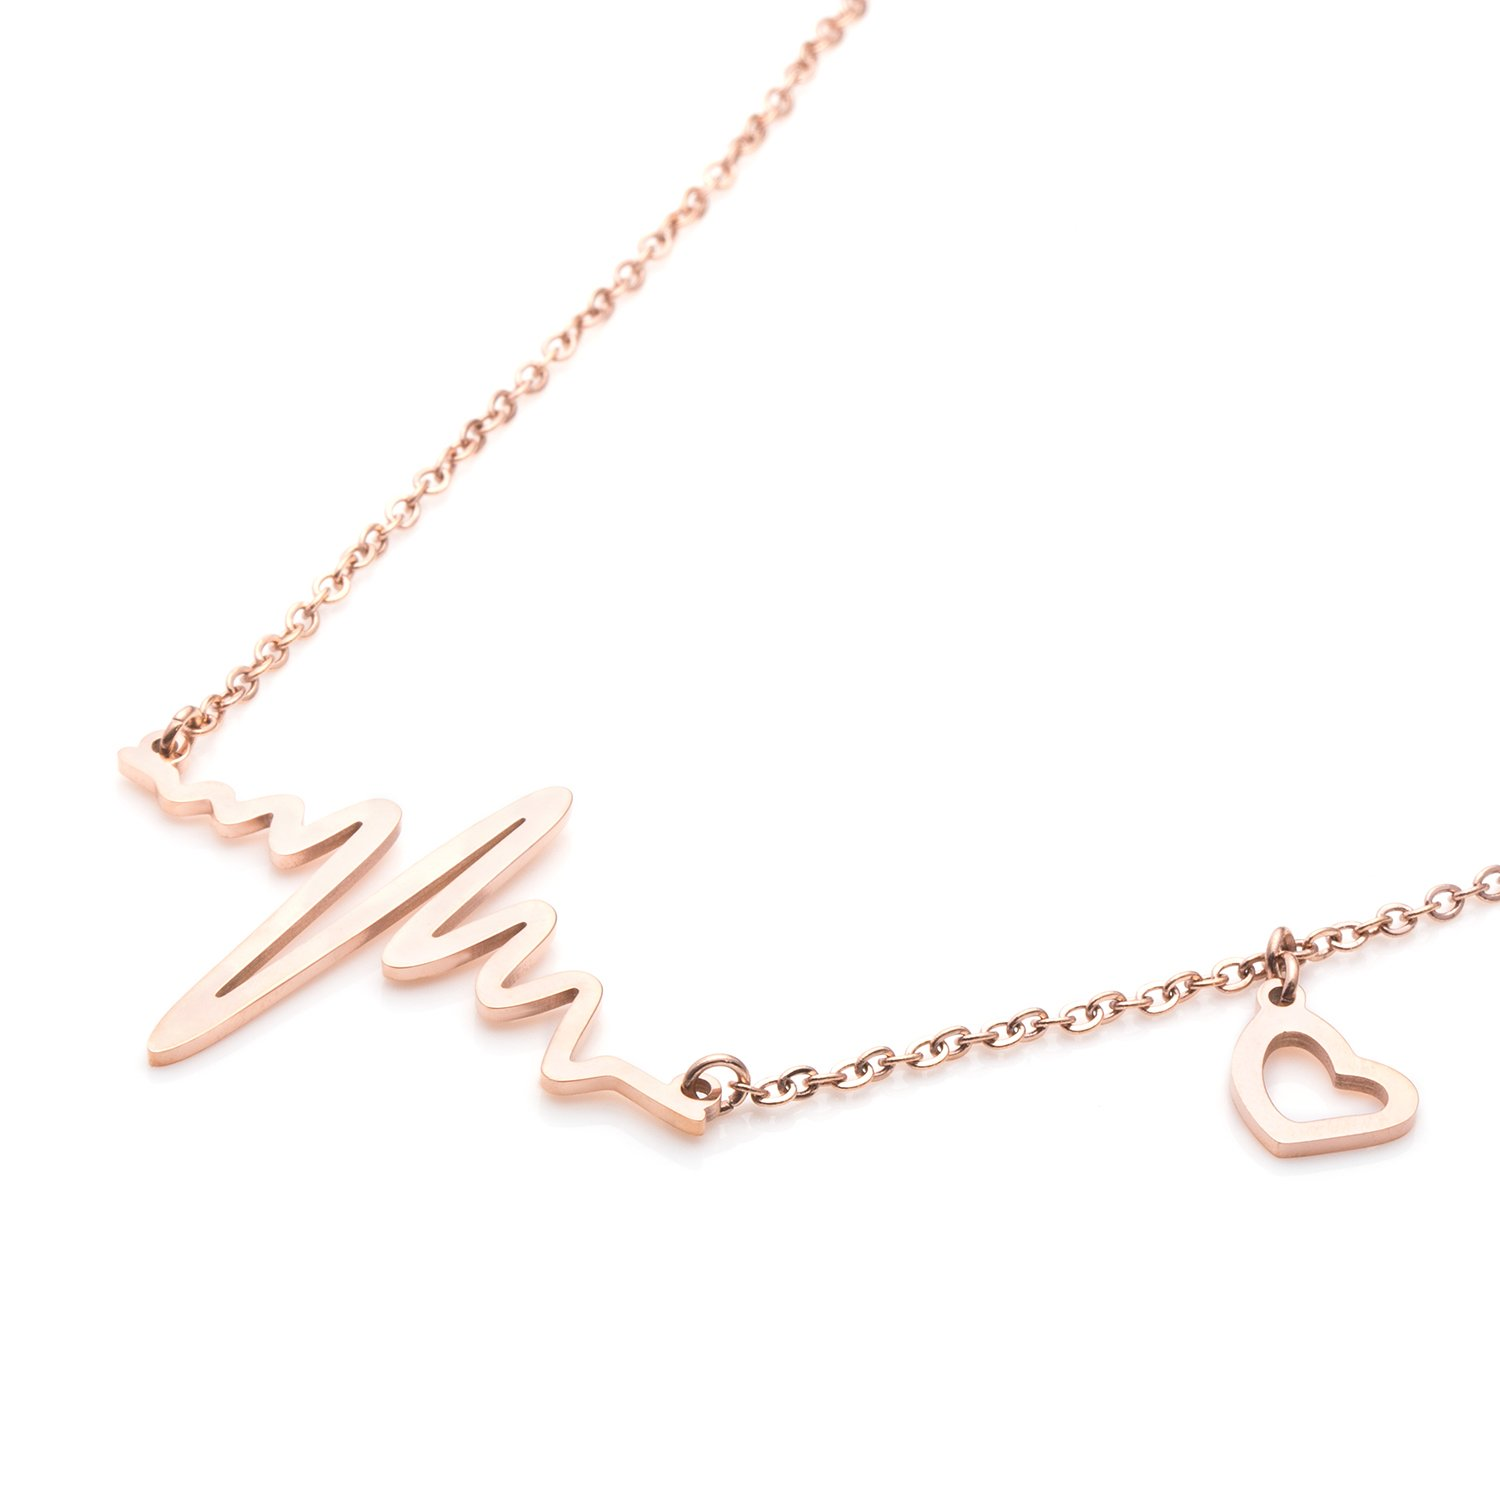 Yiyang Heartbeat Necklace Electrocardiogram Religion Charm Pendant Plated Inspirational Jewelry Birthday Gift for Women Girls